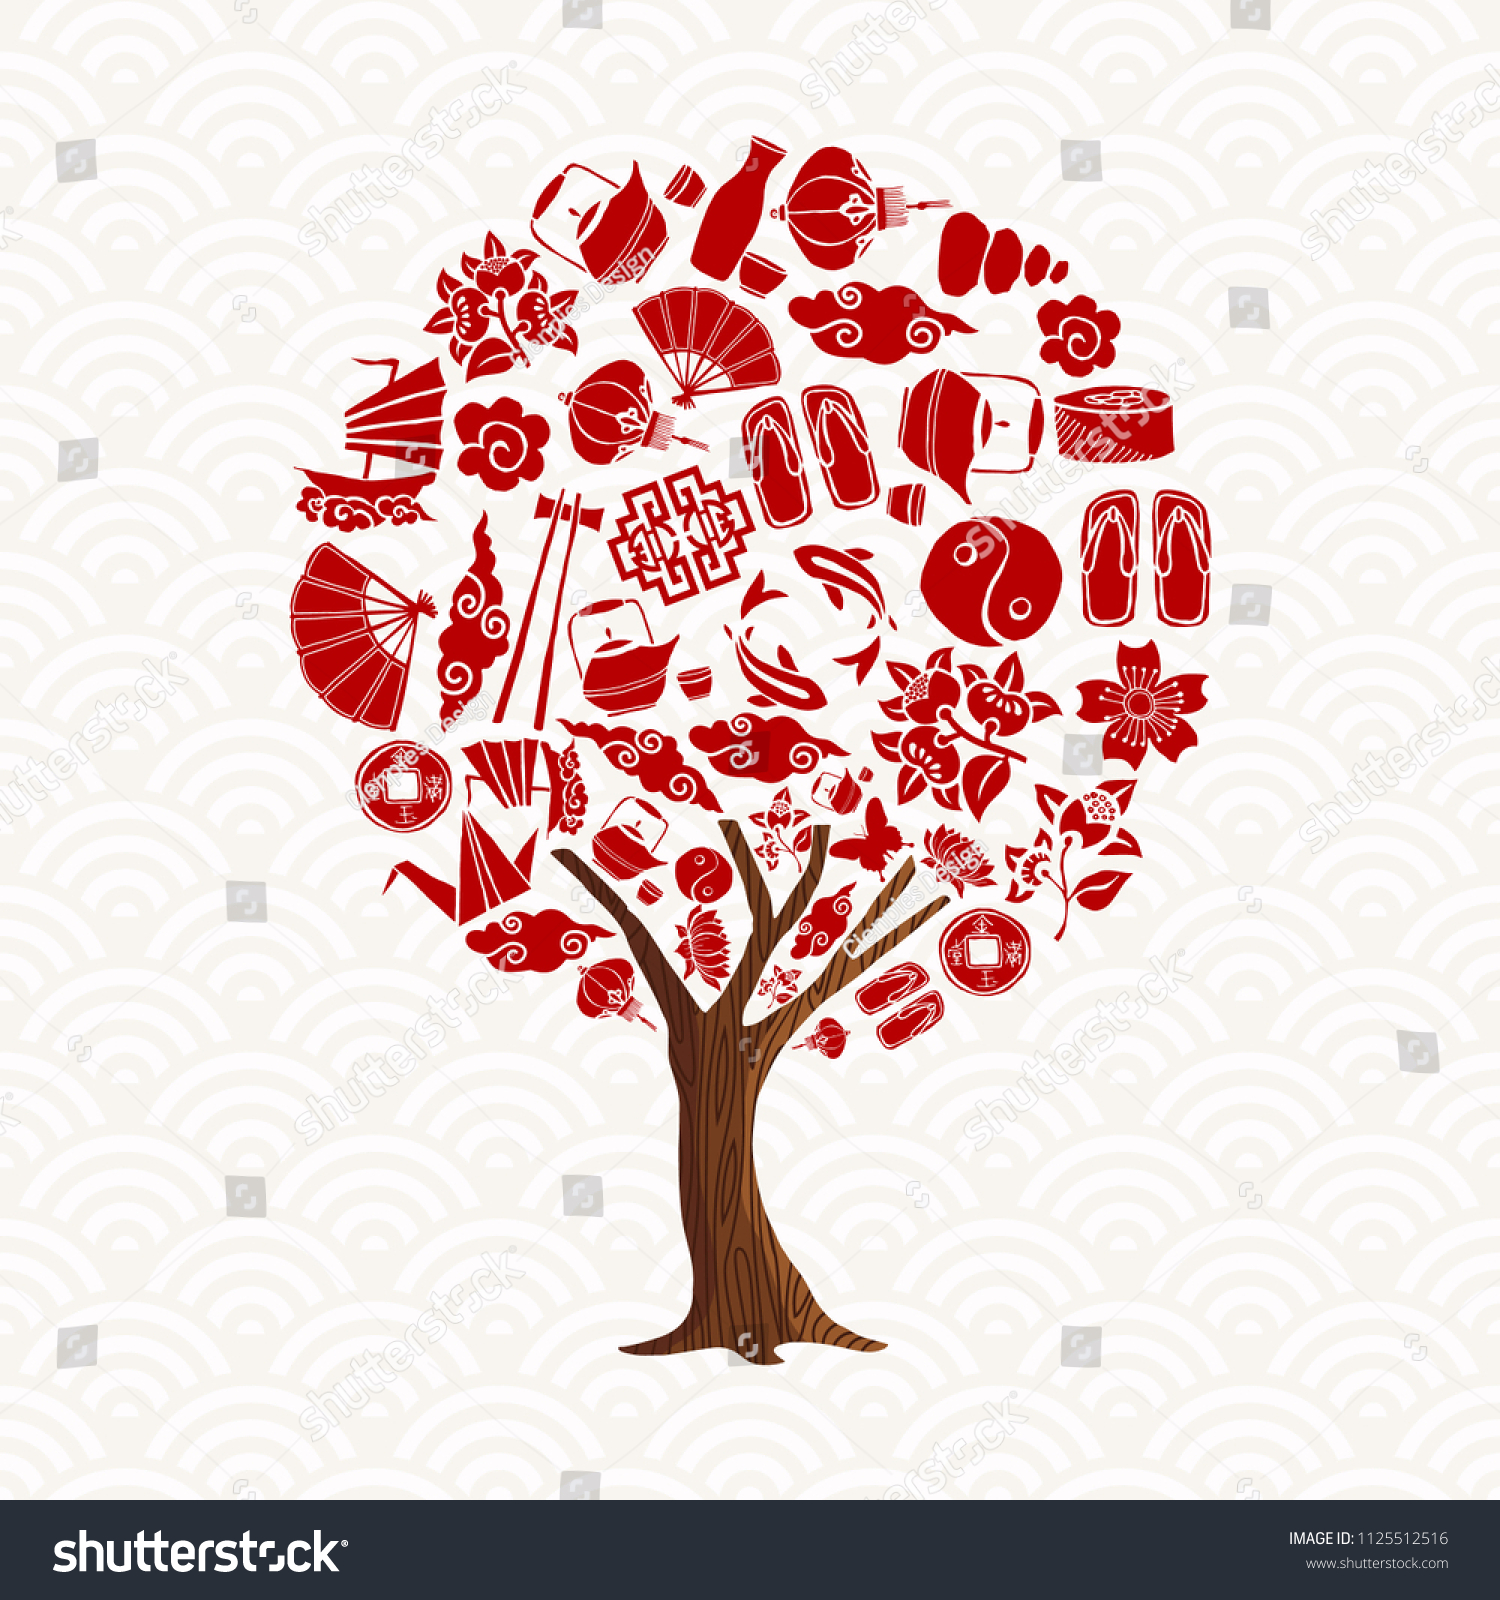 Asian Culture Tree Concept Illustration Traditional Stock Vector ...